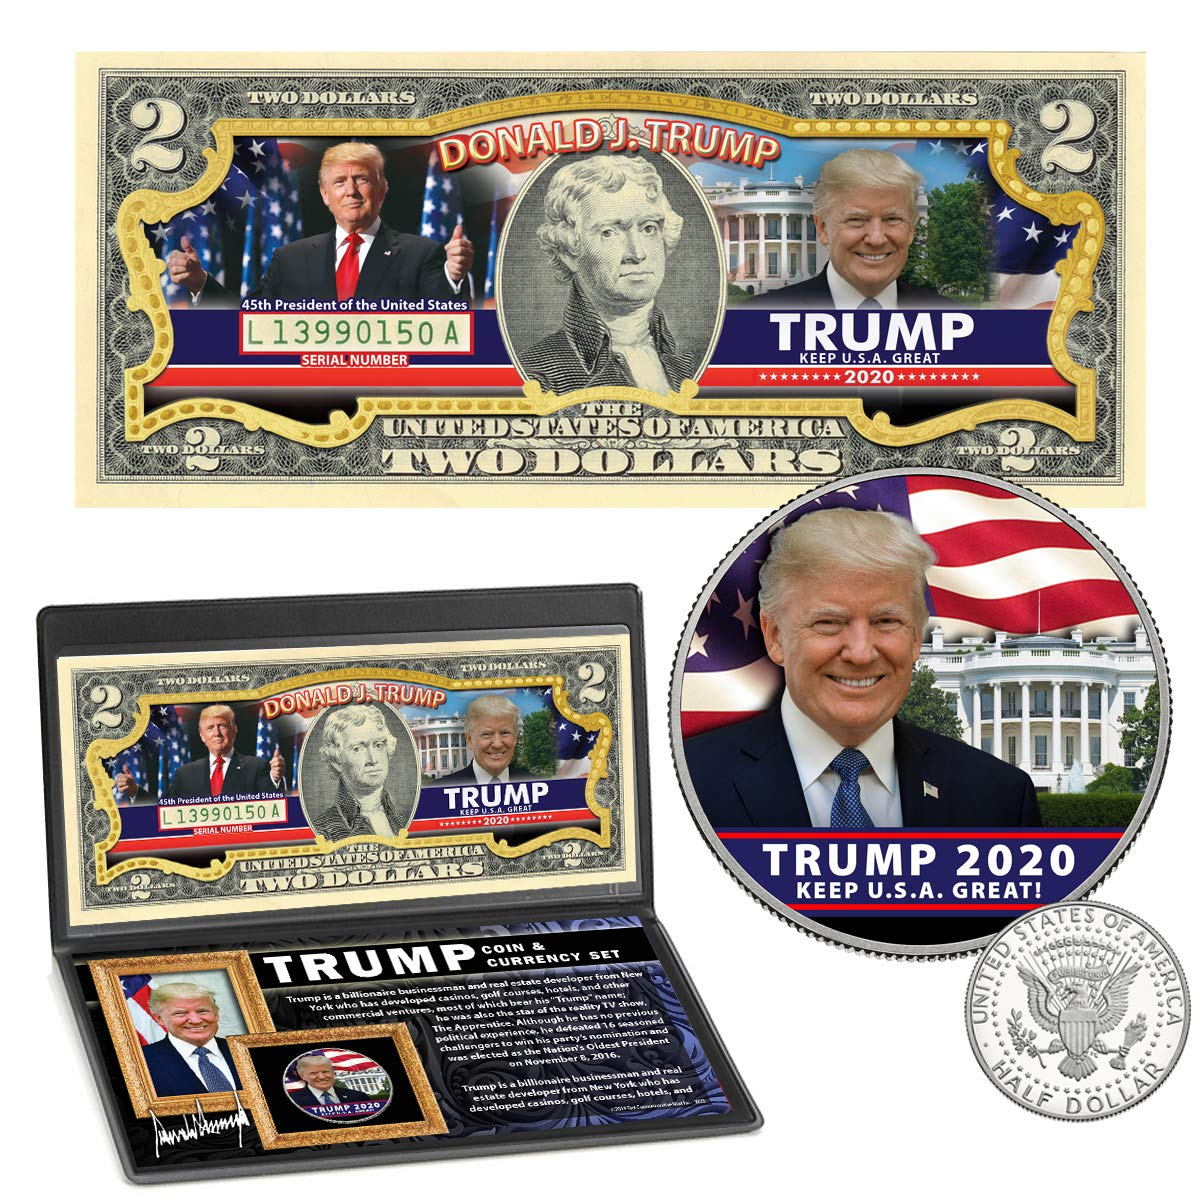 President Donald Trump 2020 Genuine $2 Bill And Coin Set – 45th President